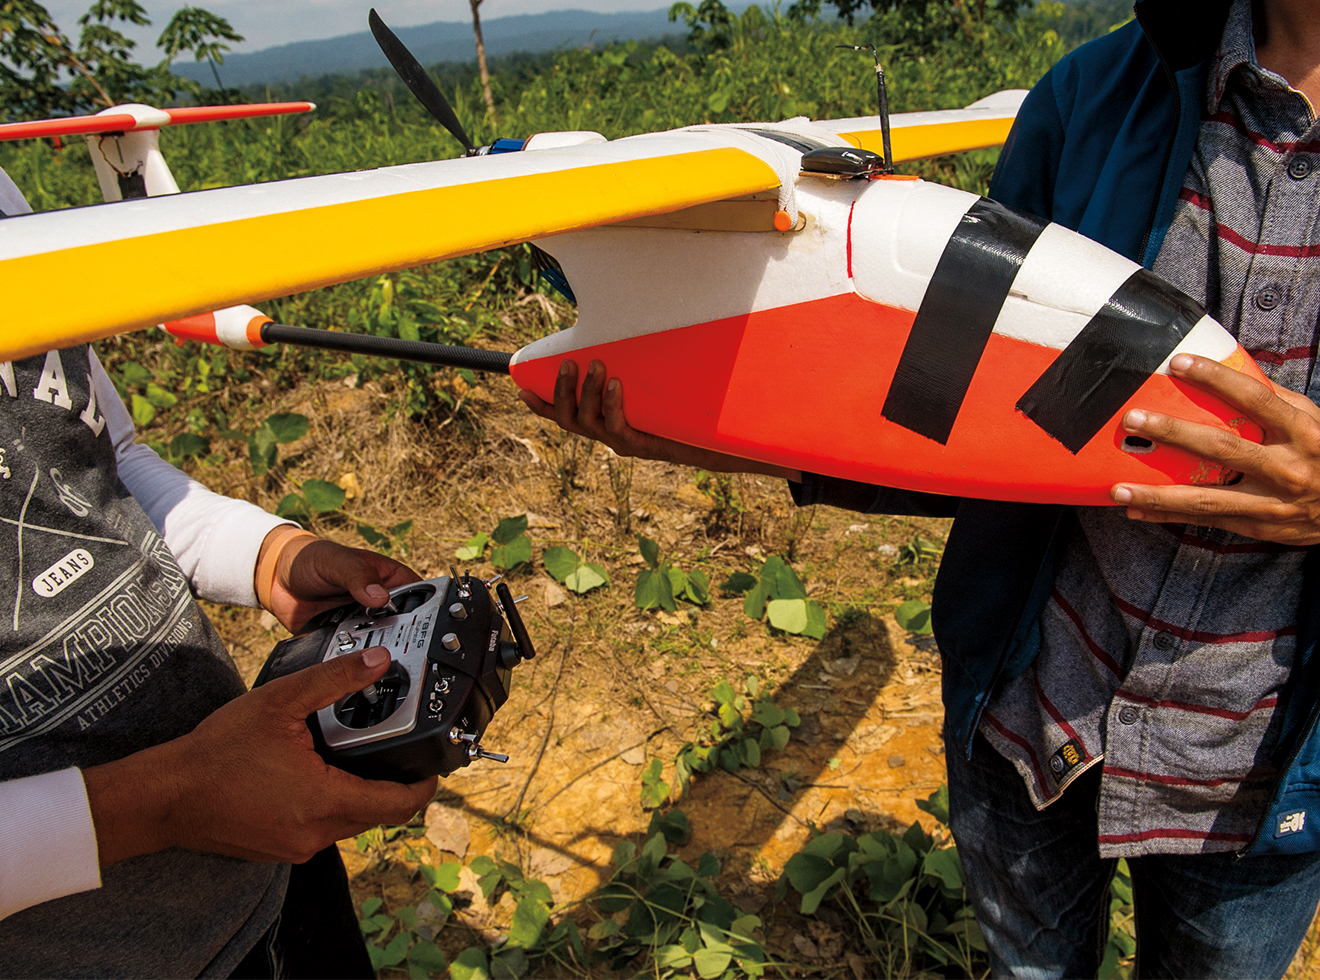 The group uses drones to document illegal oil-palm operations.